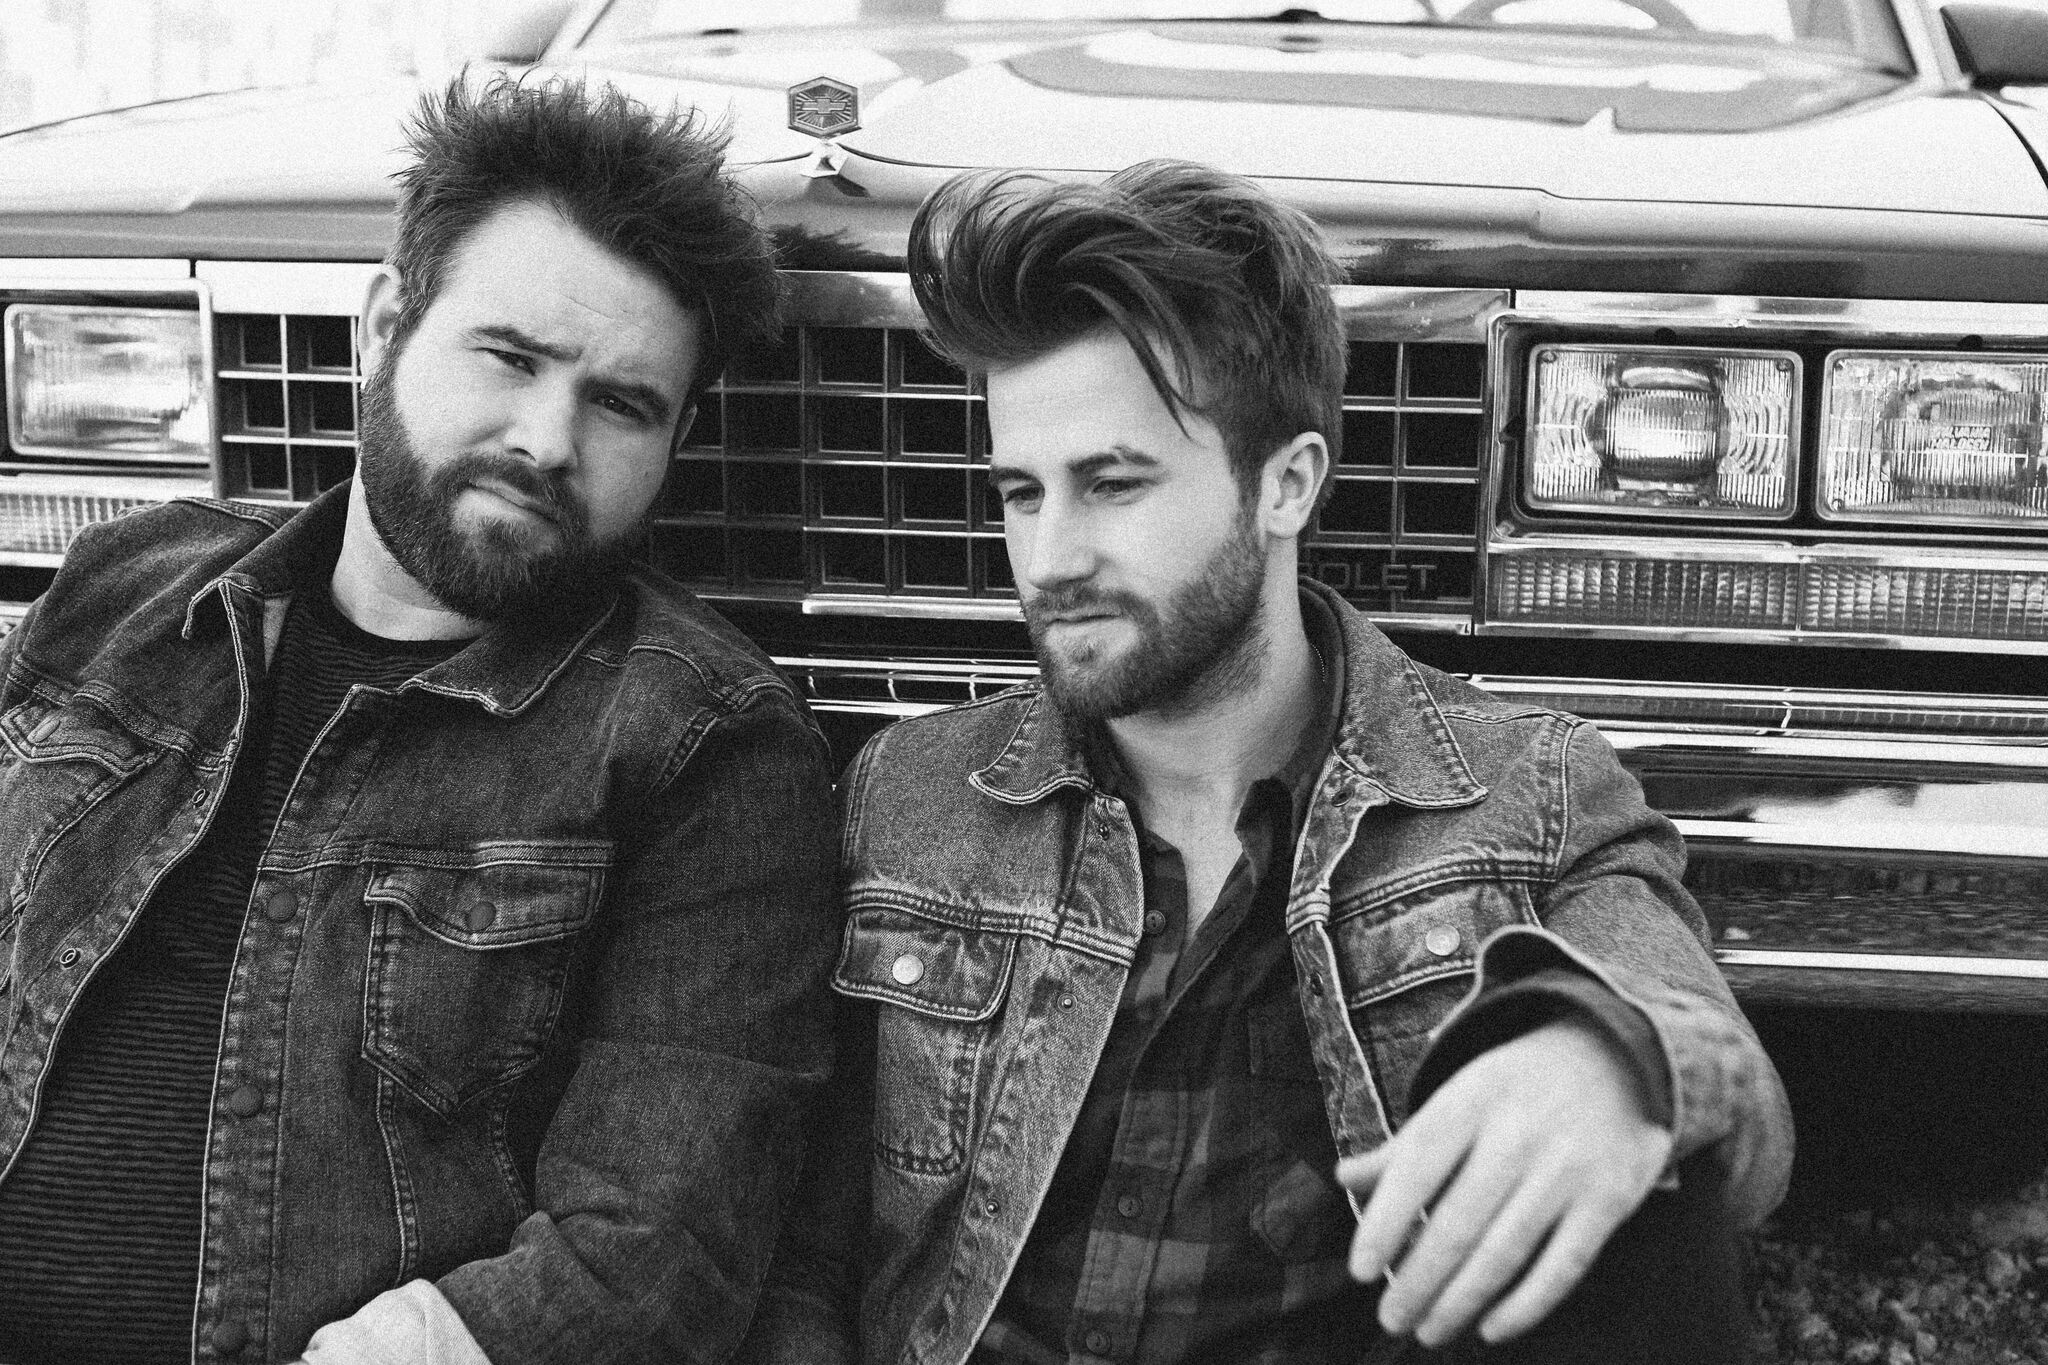 Swon Brothers w/ special guest Dave Brinker